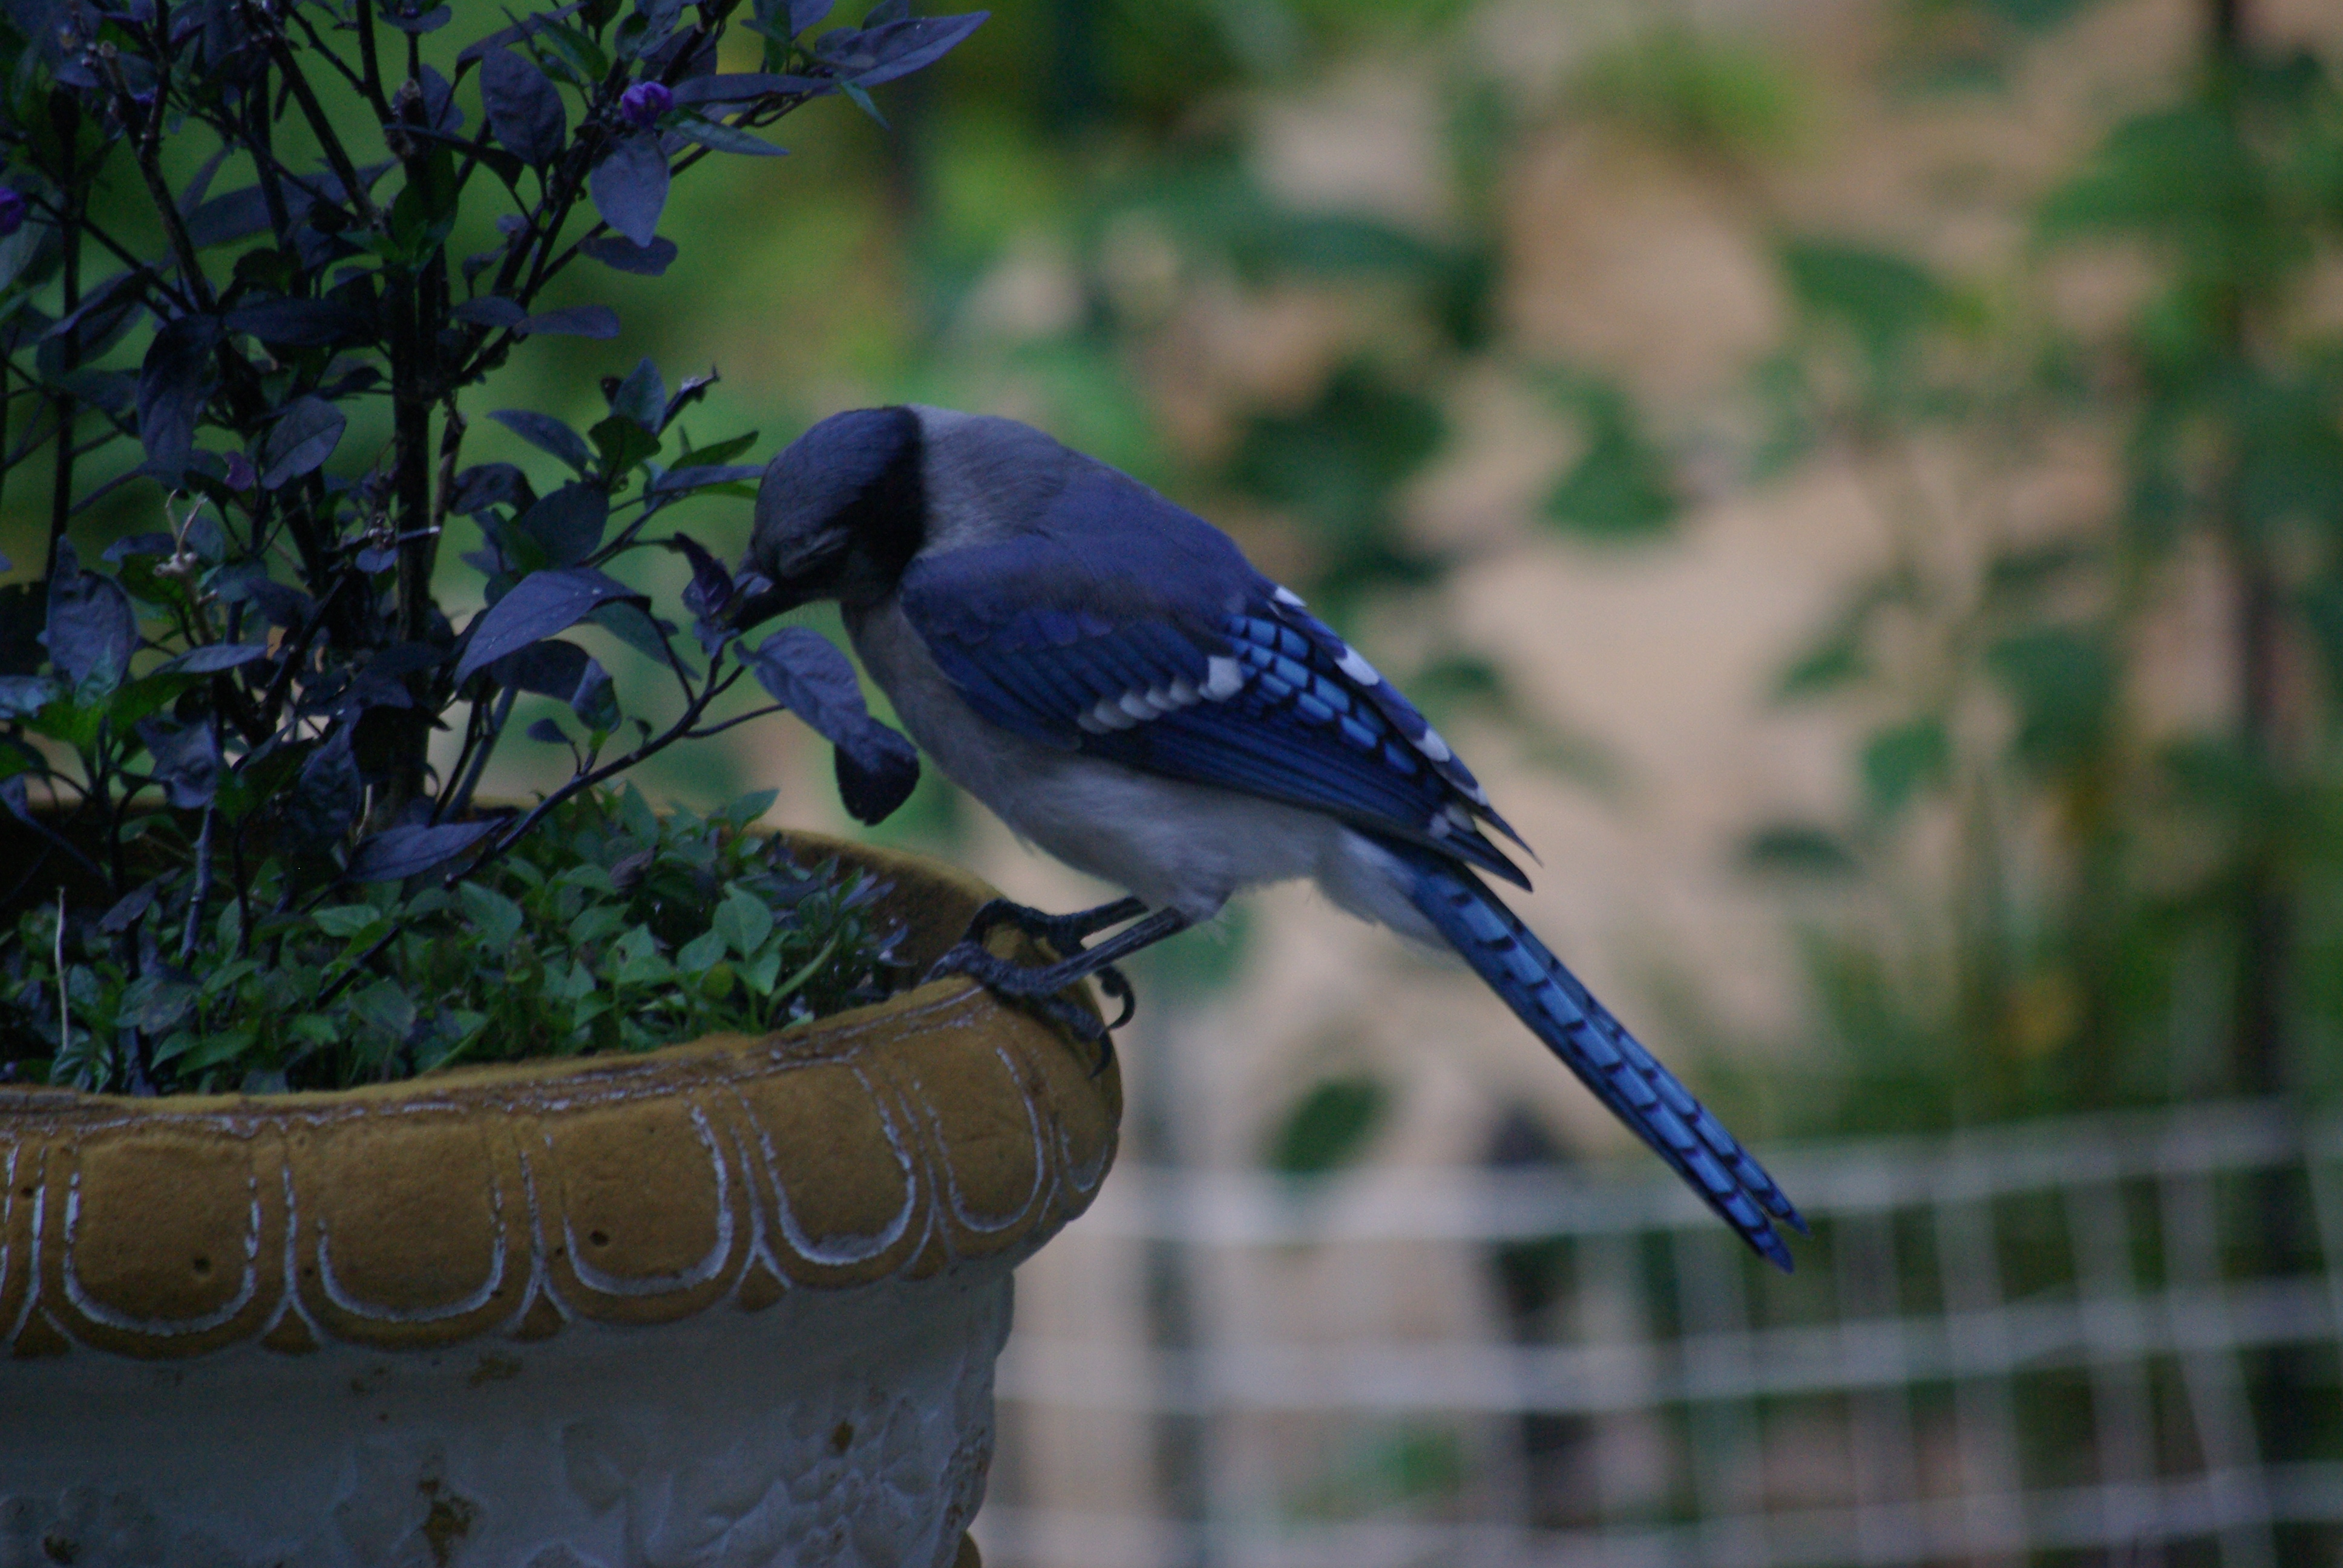 Blue jay working to get a purple pepper